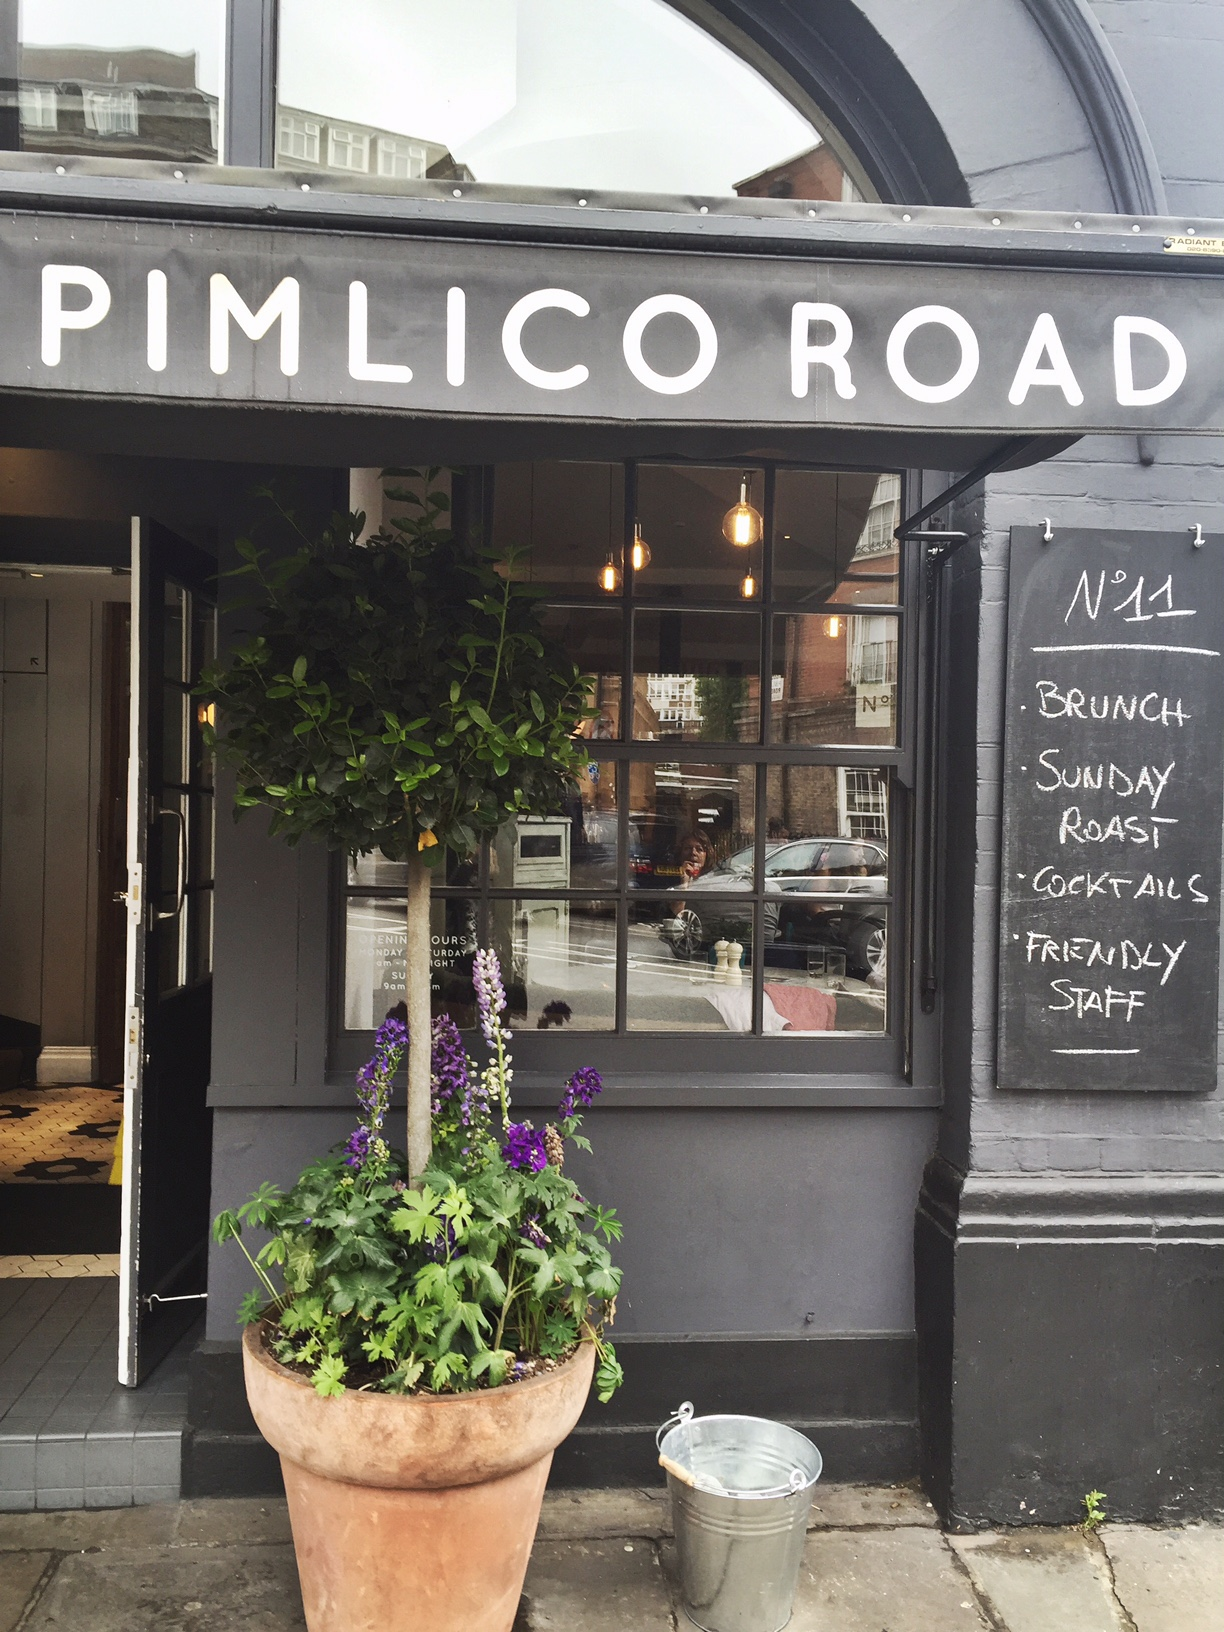 No 11 Pimlico Road London